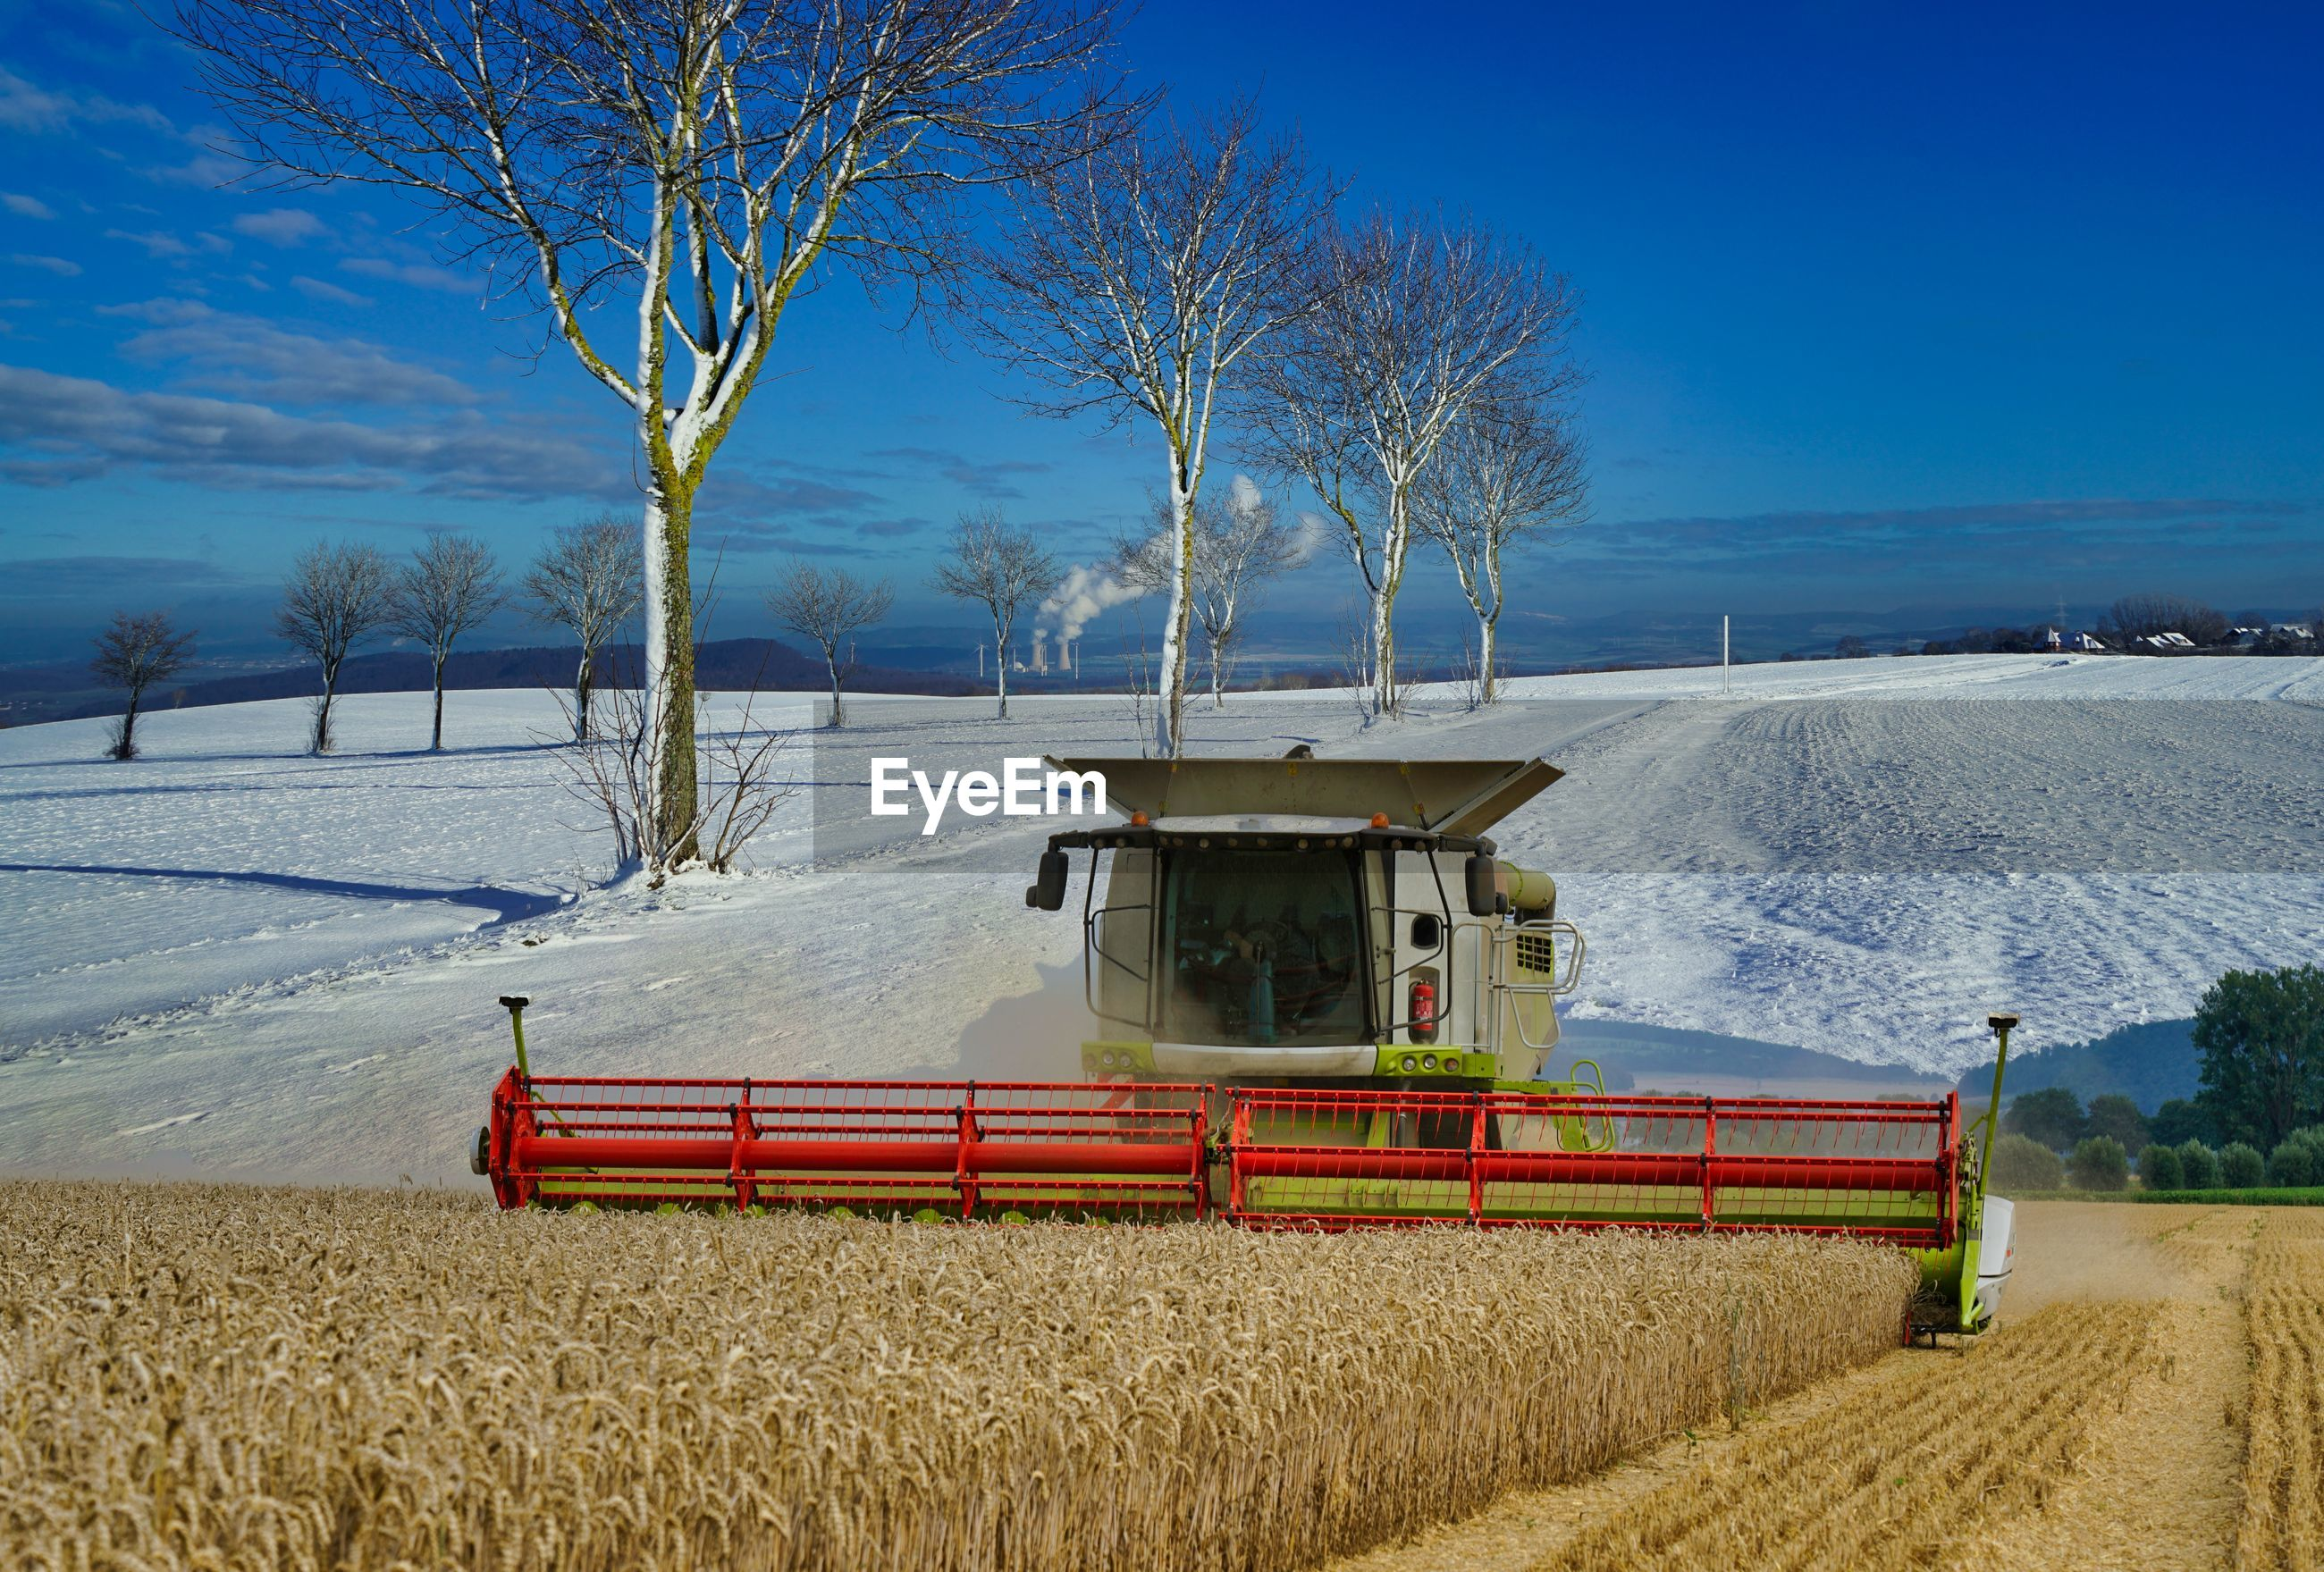 VIEW OF AGRICULTURAL FIELD IN WINTER